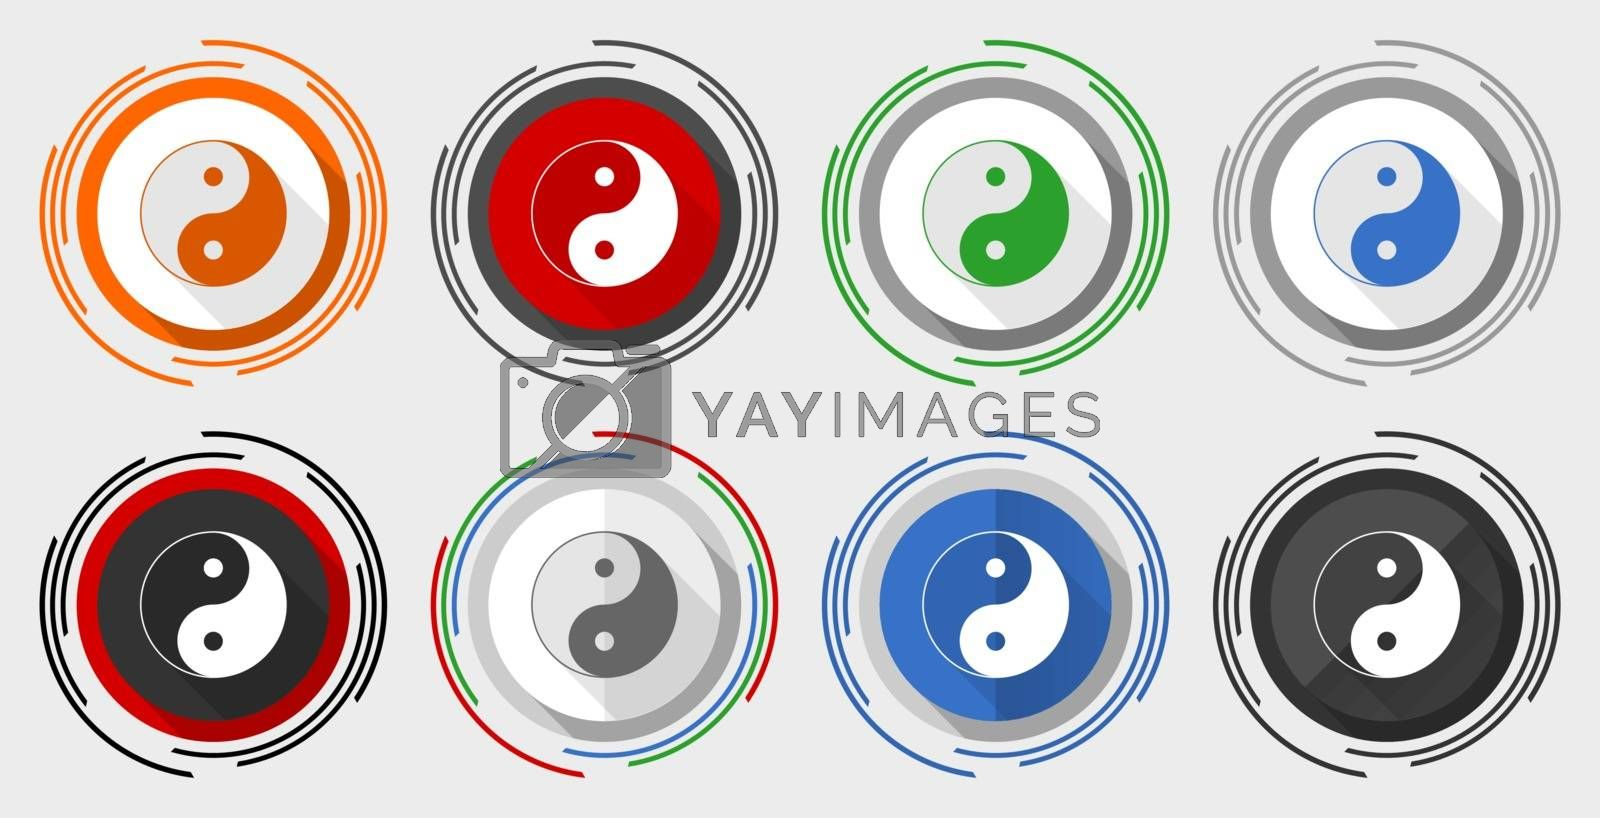 Ying yang vector icon set, modern design flat graphic in 8 options for web design and mobile applications